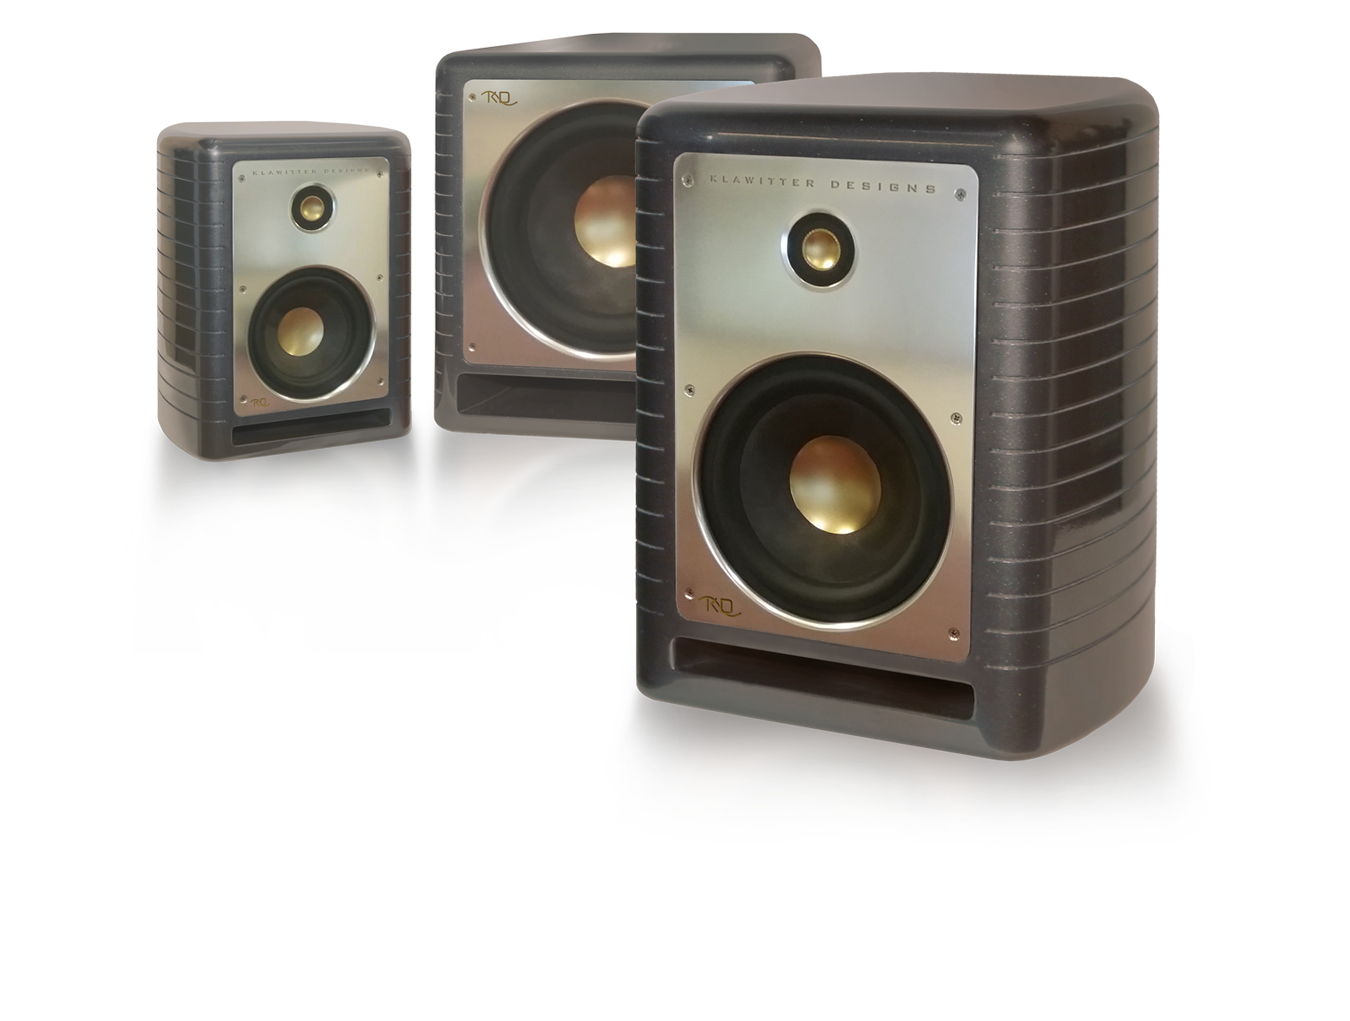 Speakers transparent monitor. Klawitter designs these rather